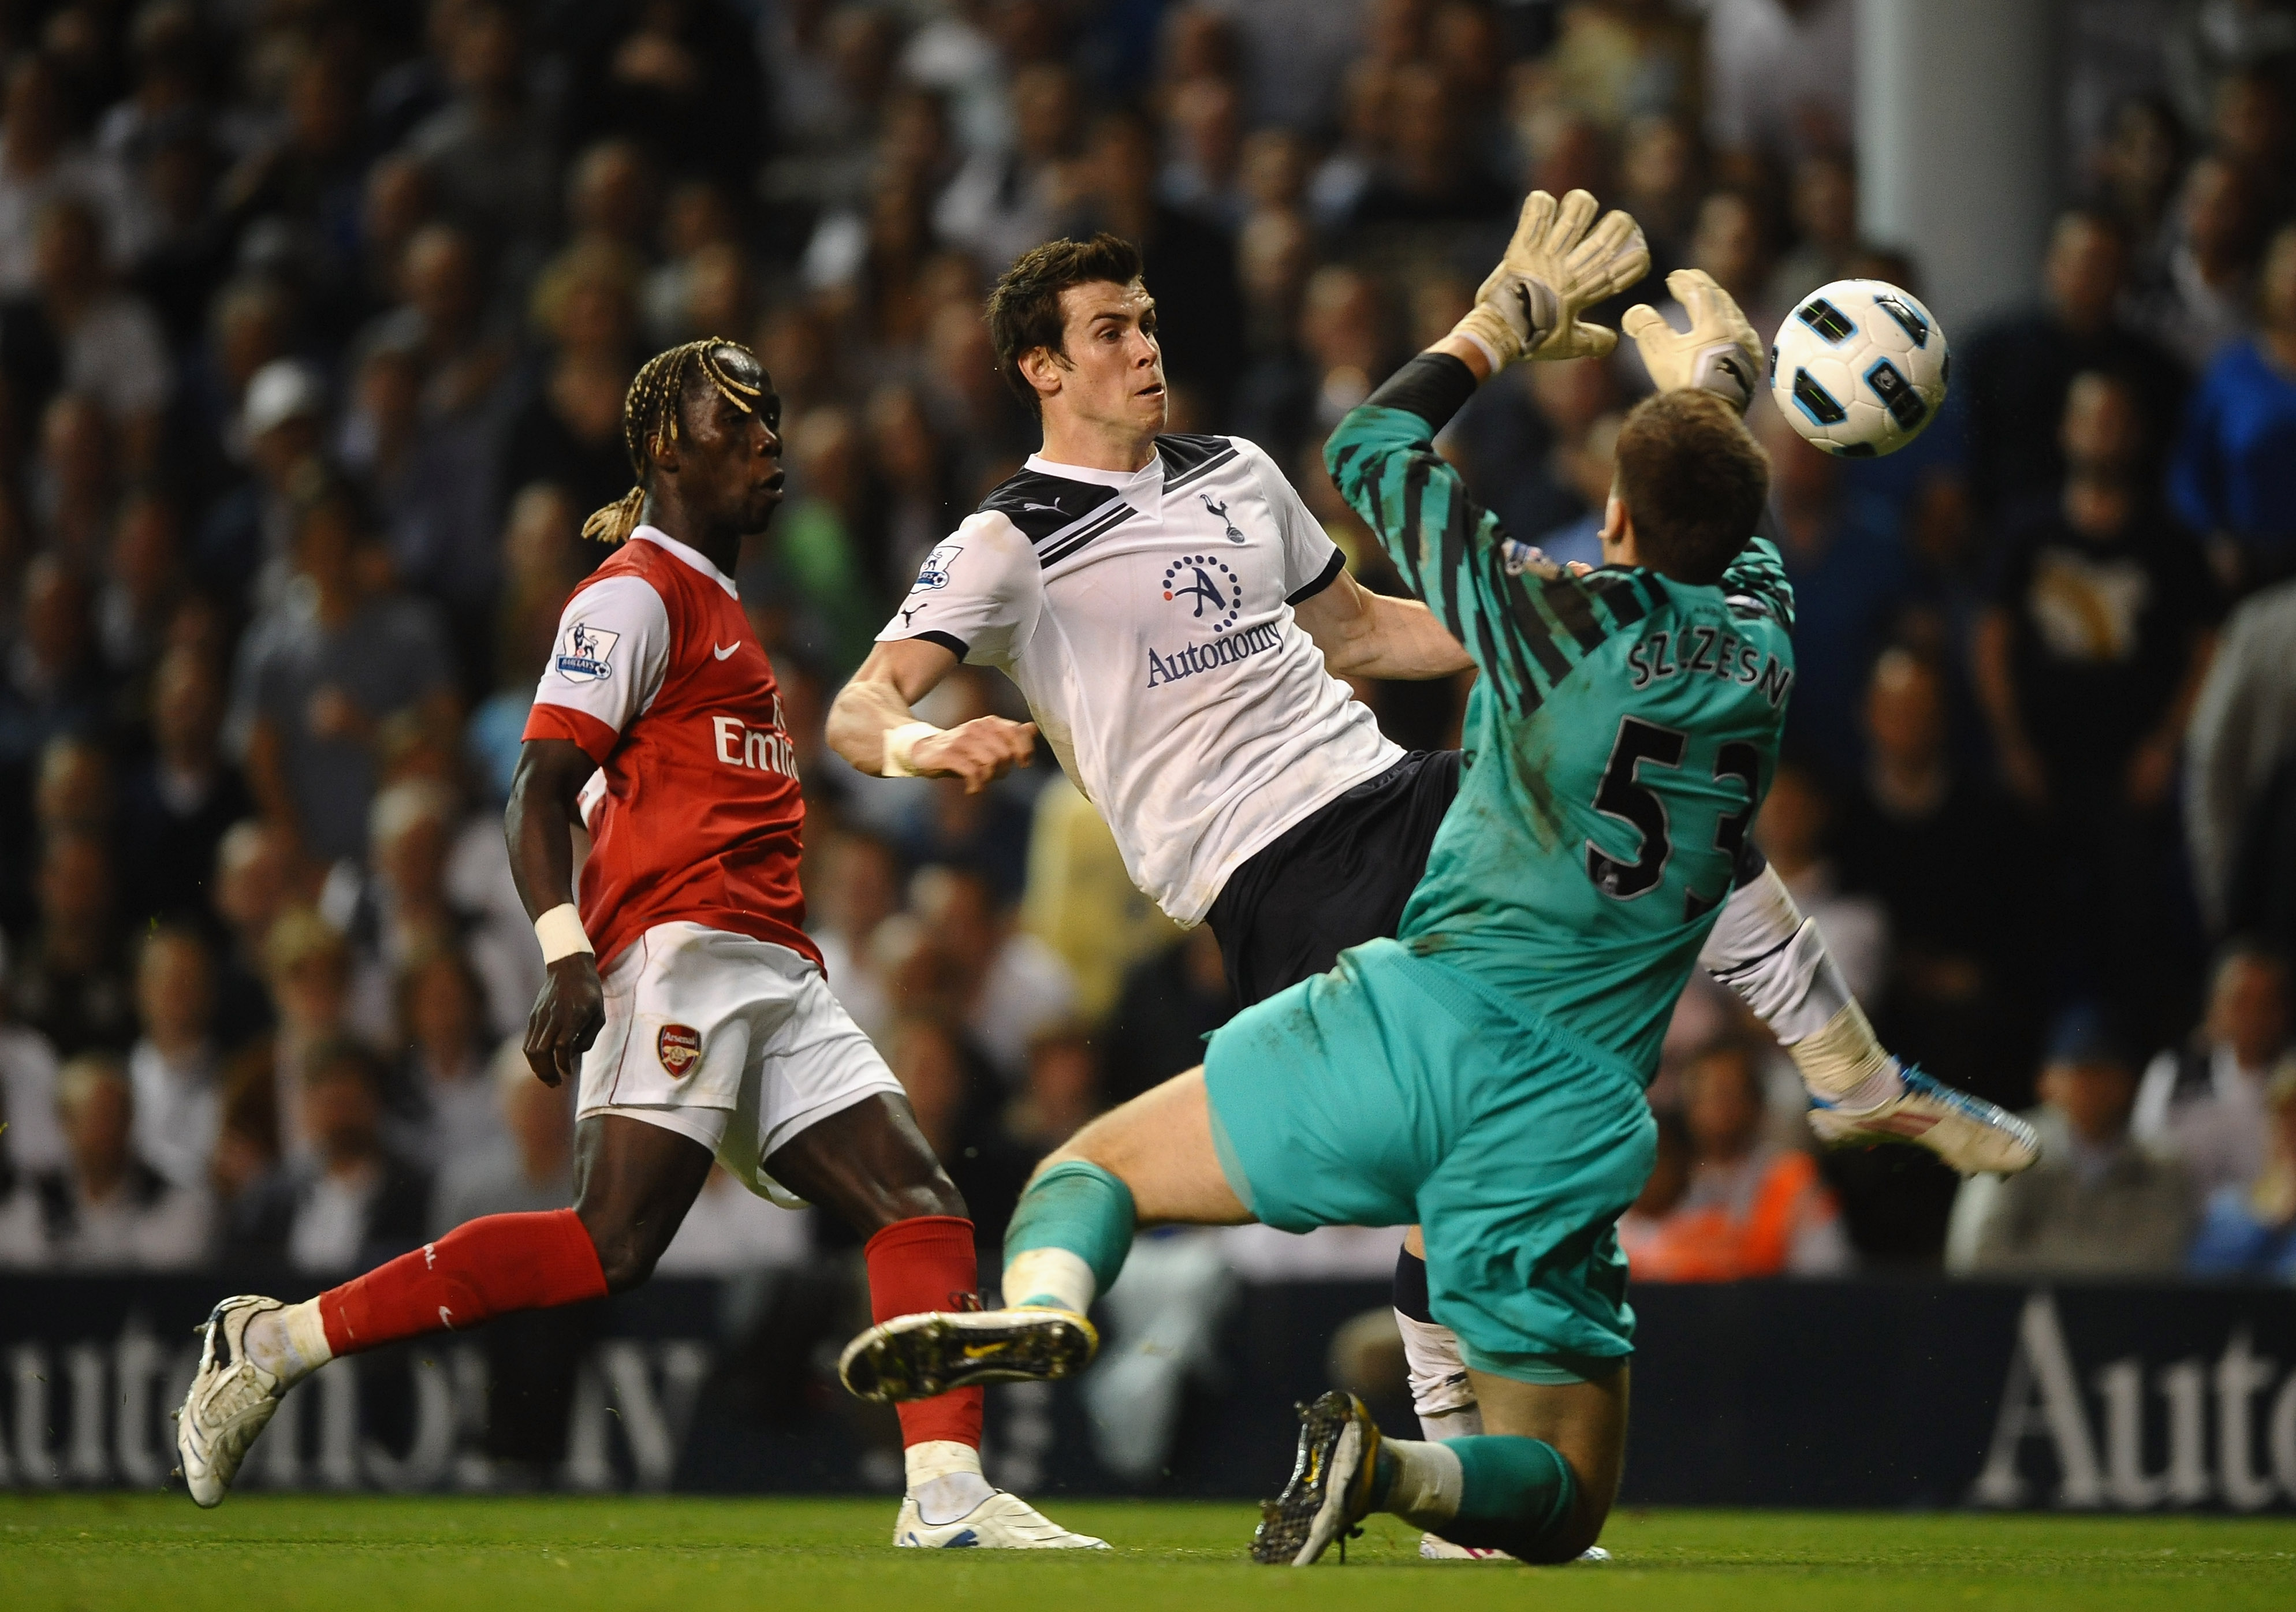 LONDON, ENGLAND - APRIL 20:  Wojciech Szczesny of Arsenal brings down Gareth Bale of Spurs during the Barclays Premier League match between Tottenham Hotspur and Arsenal at White Hart Lane on April 20, 2011 in London, England.  (Photo by Laurence Griffith